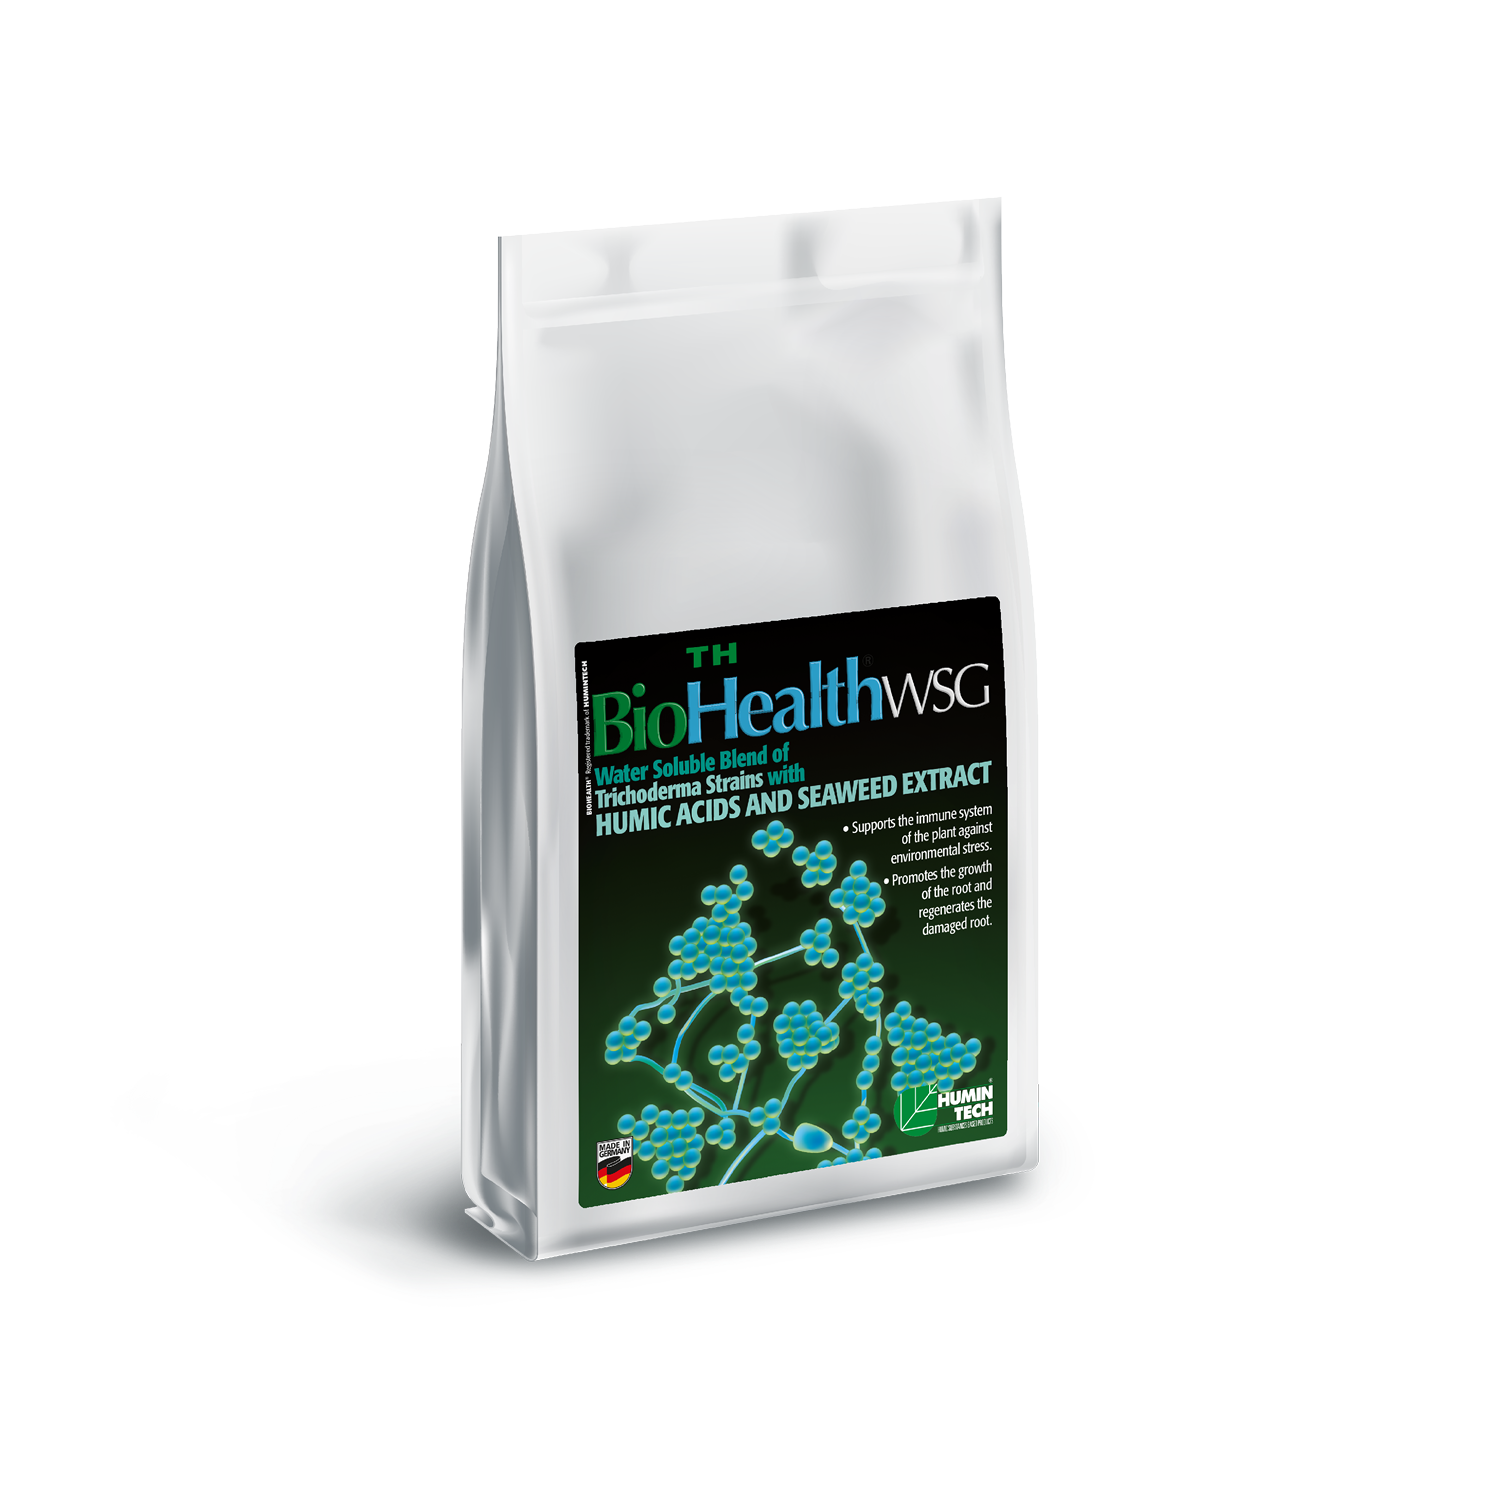 BioHealth TH WSG Water Soluble Blend of Trichoderma strains Humic Acids and Seaweed Extract bag